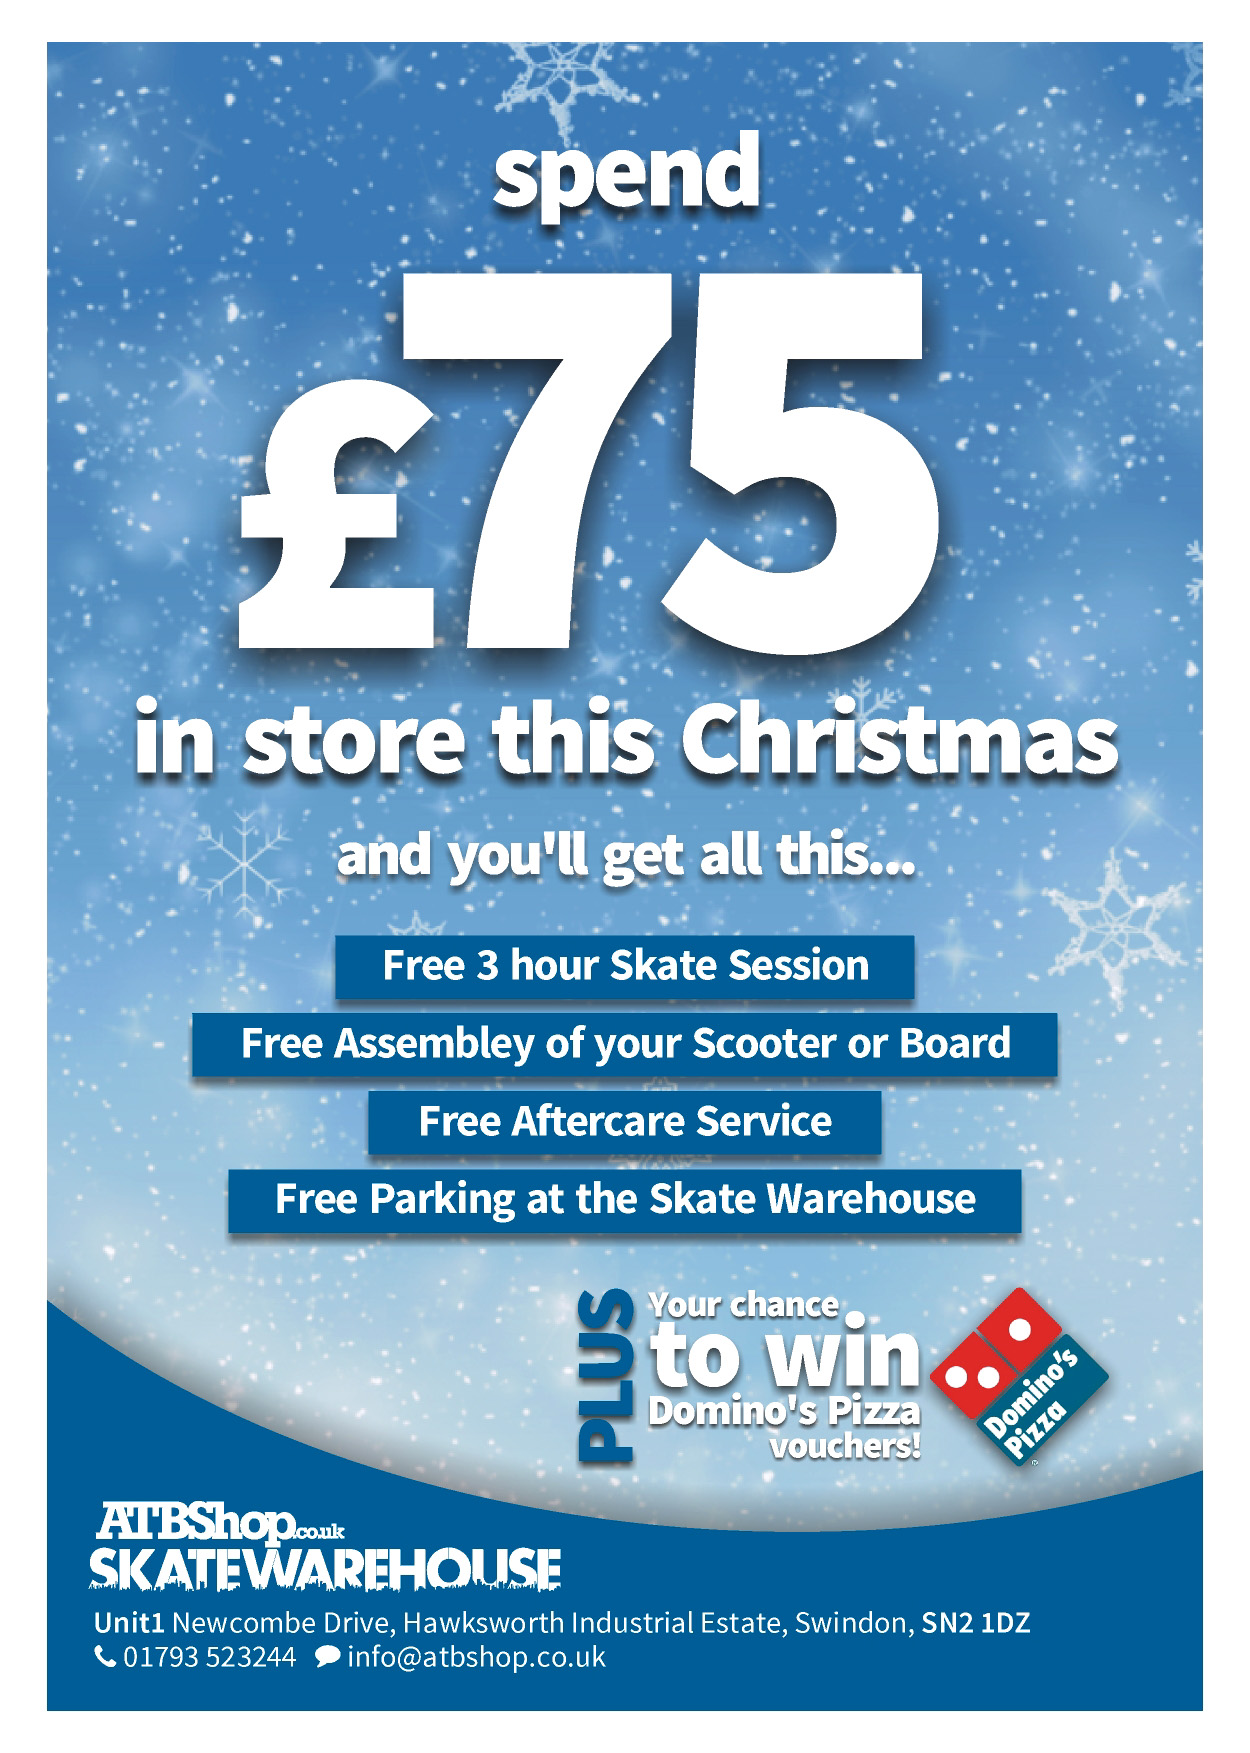 Get a Free Skate Voucher when you spend £75 with us!